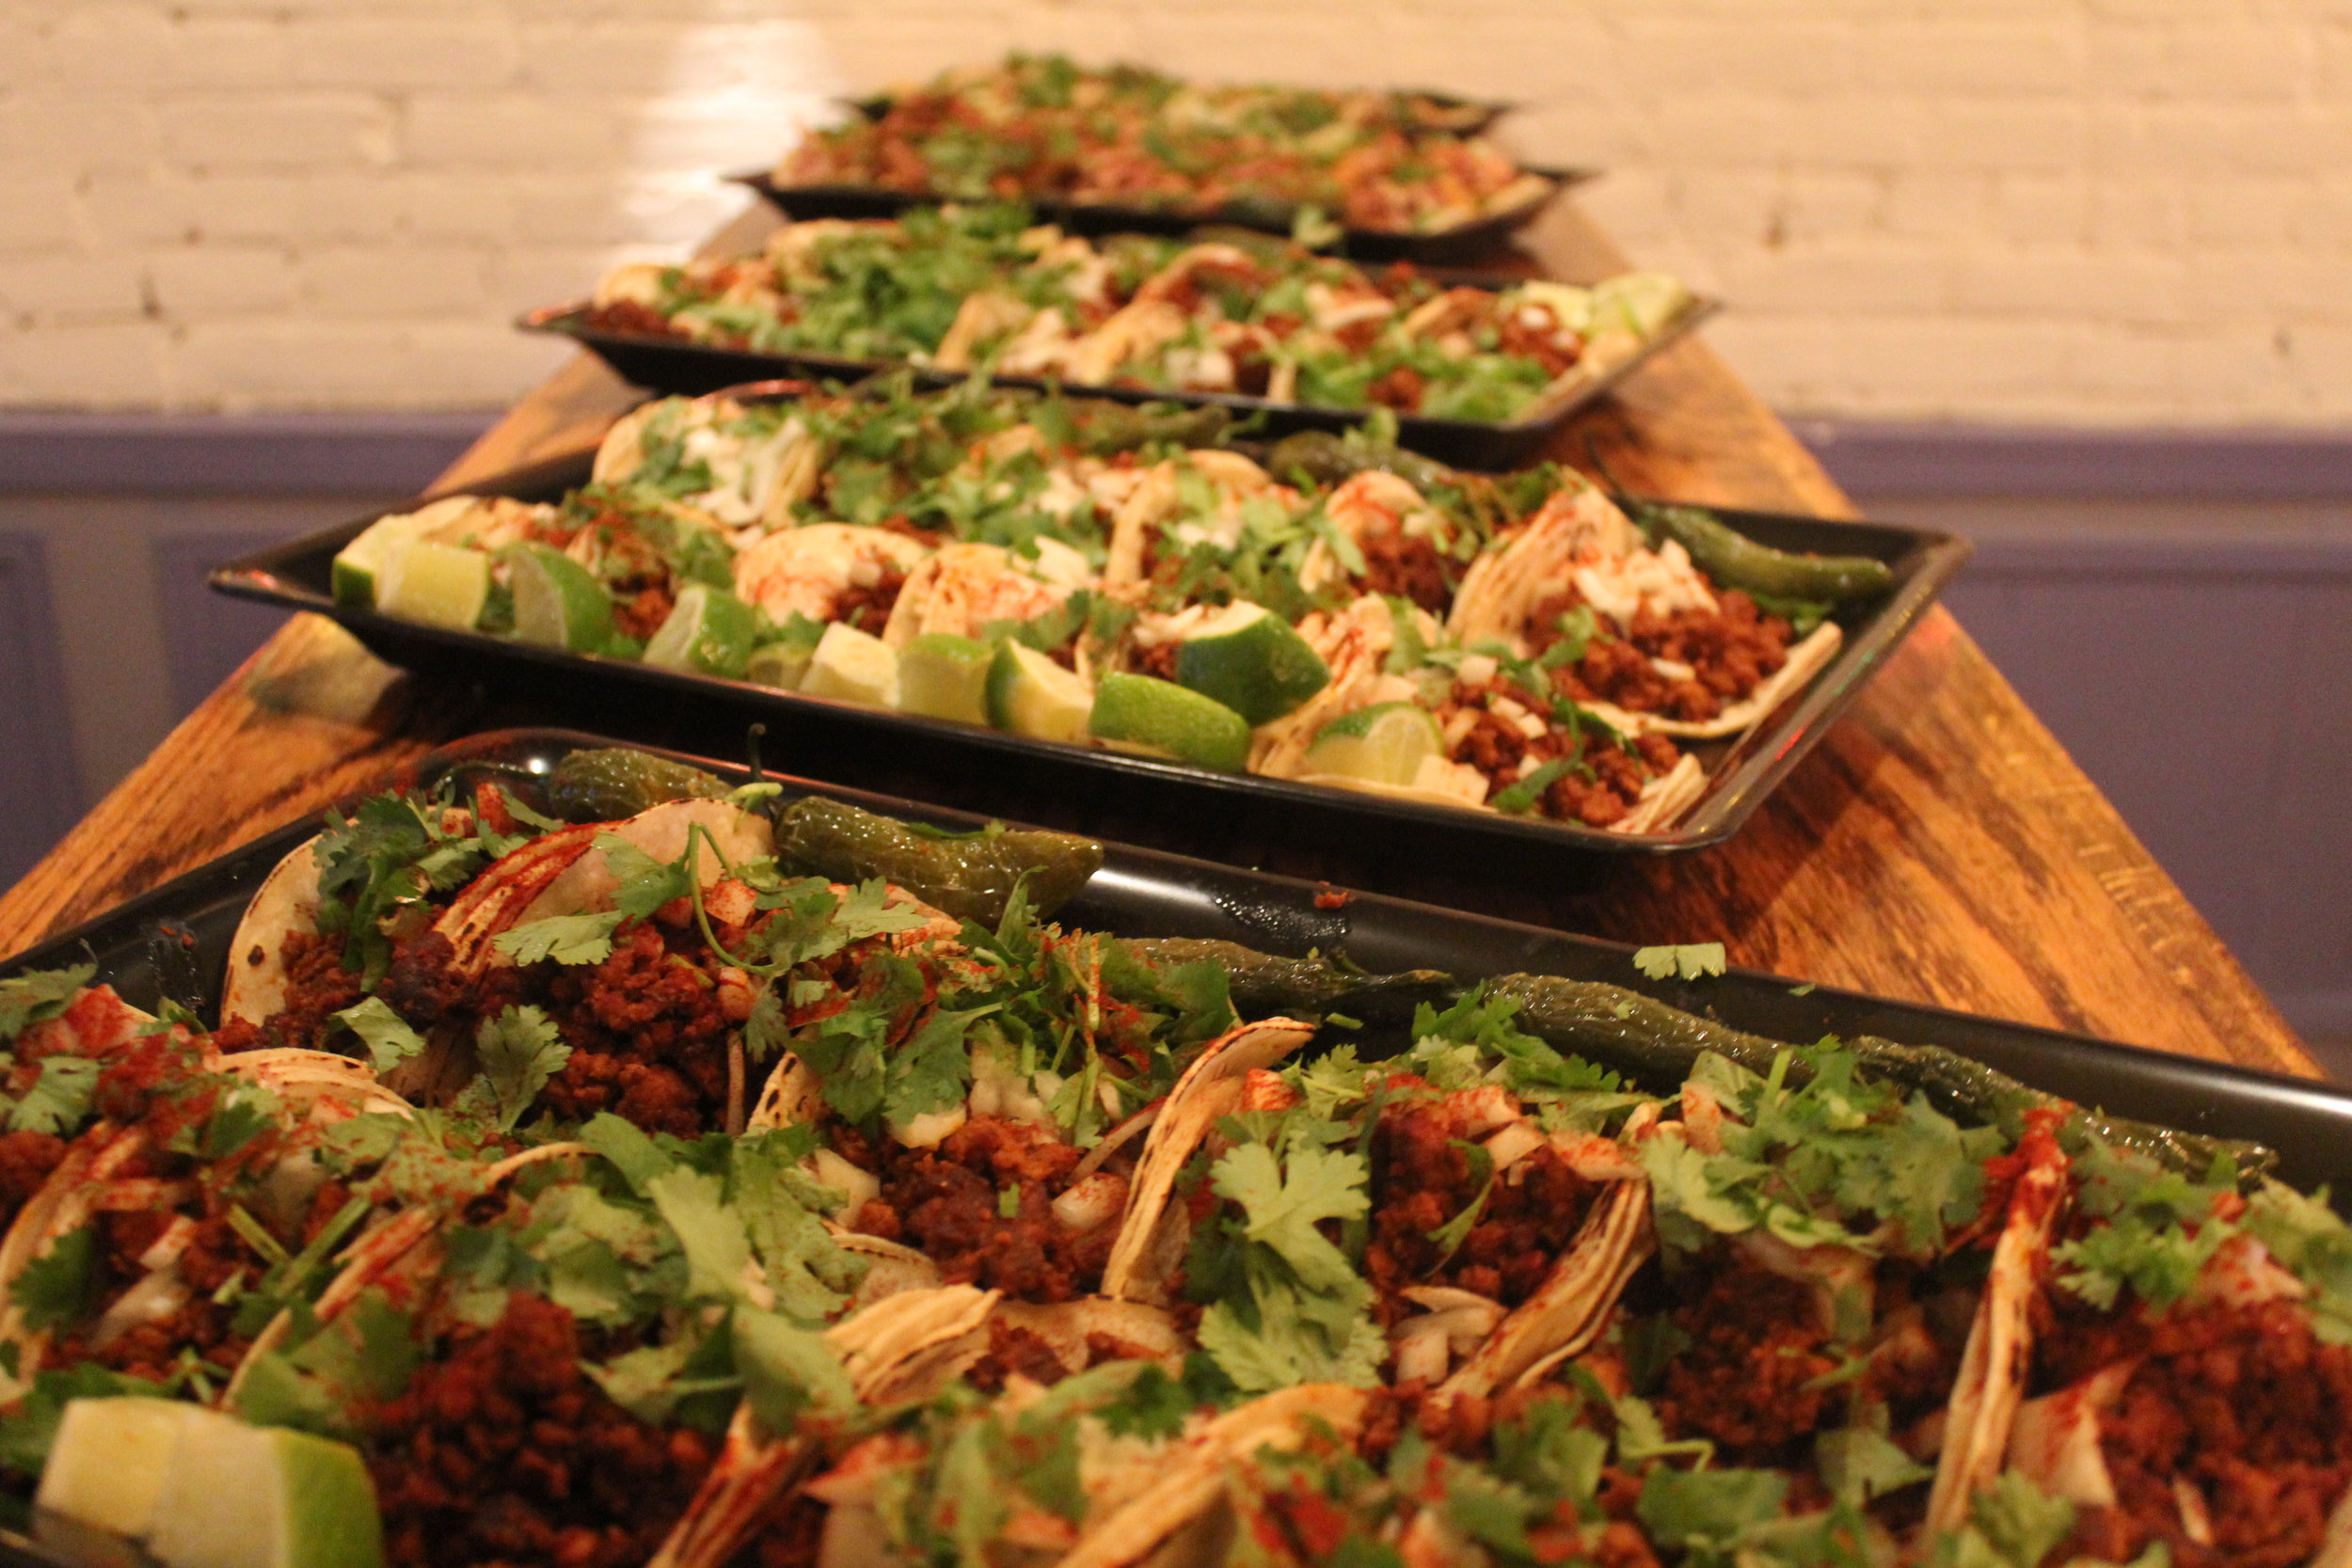 Order now! - Let us cater your next event.